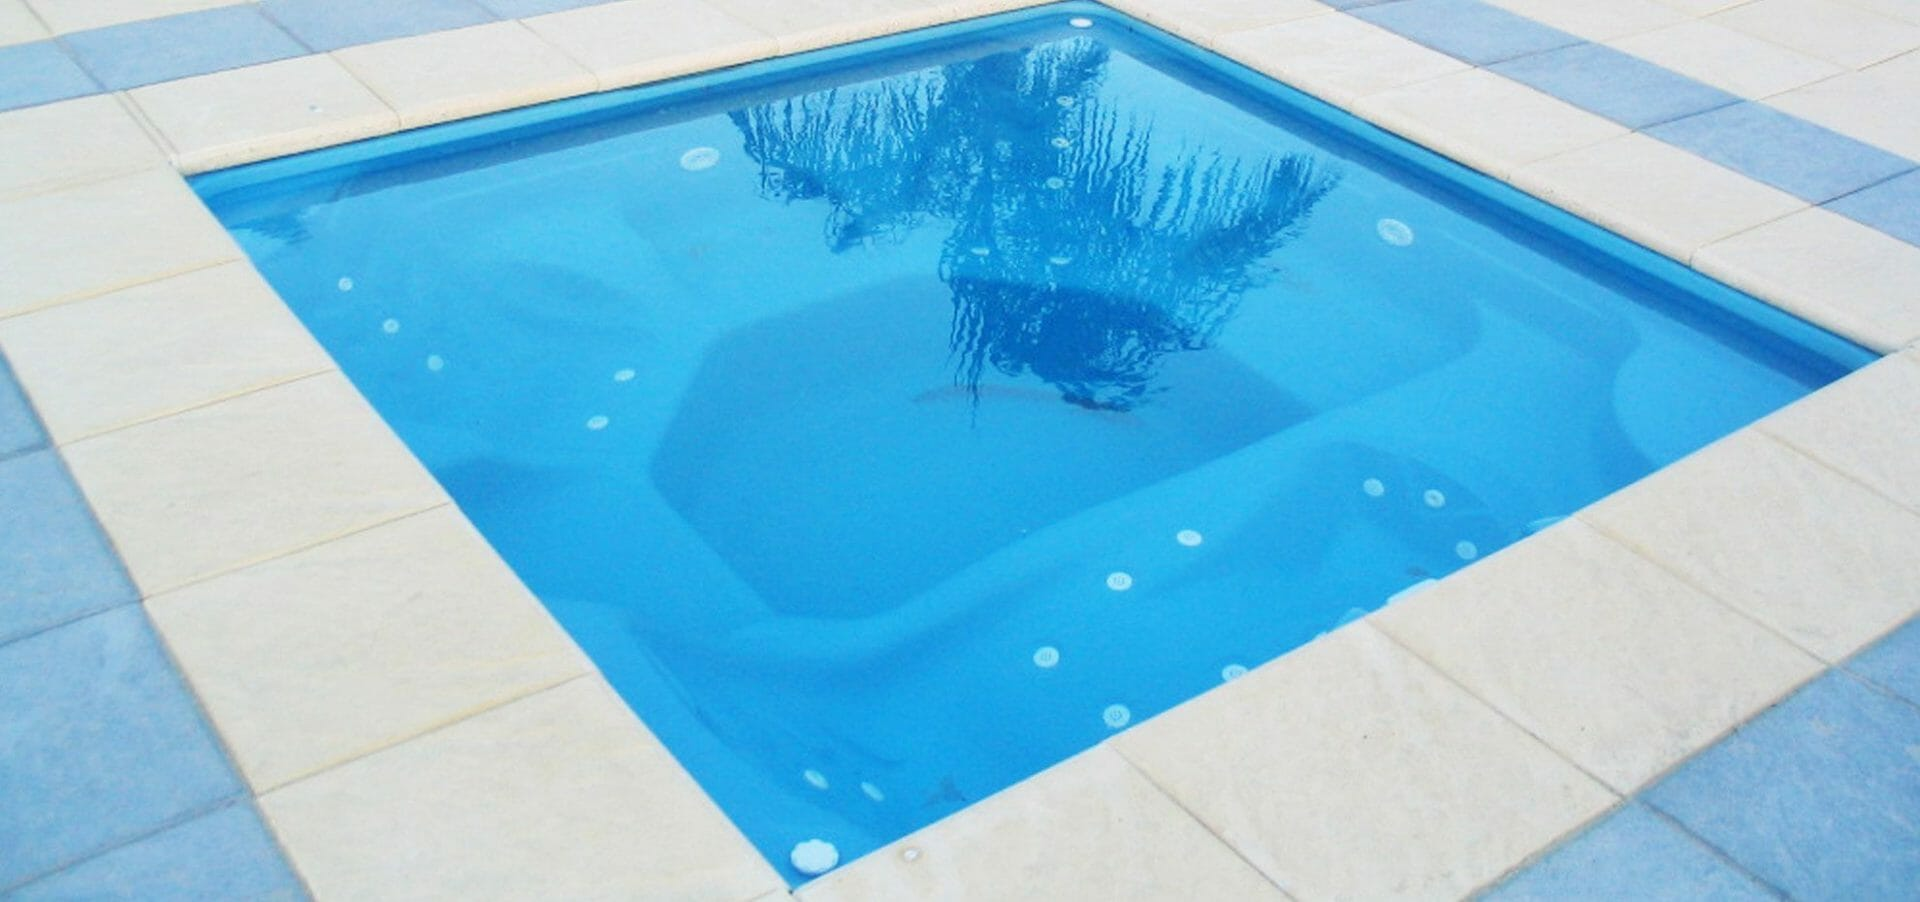 Sorrento Fiberglass pool with Coping by Leisure Pools